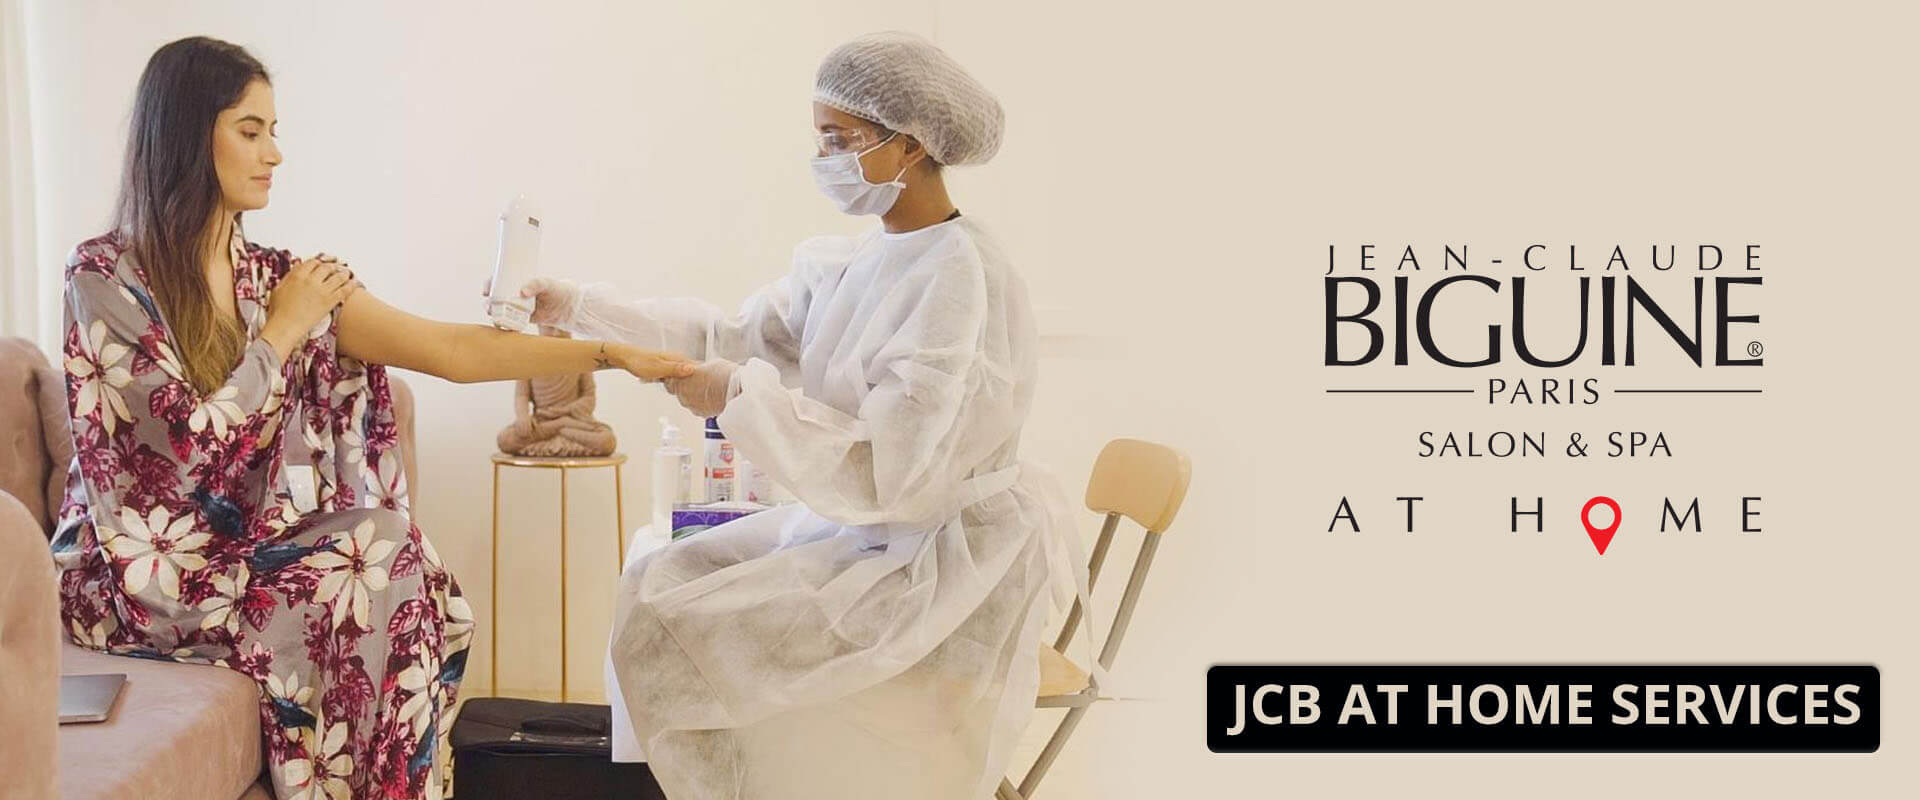 JCB At Home Services